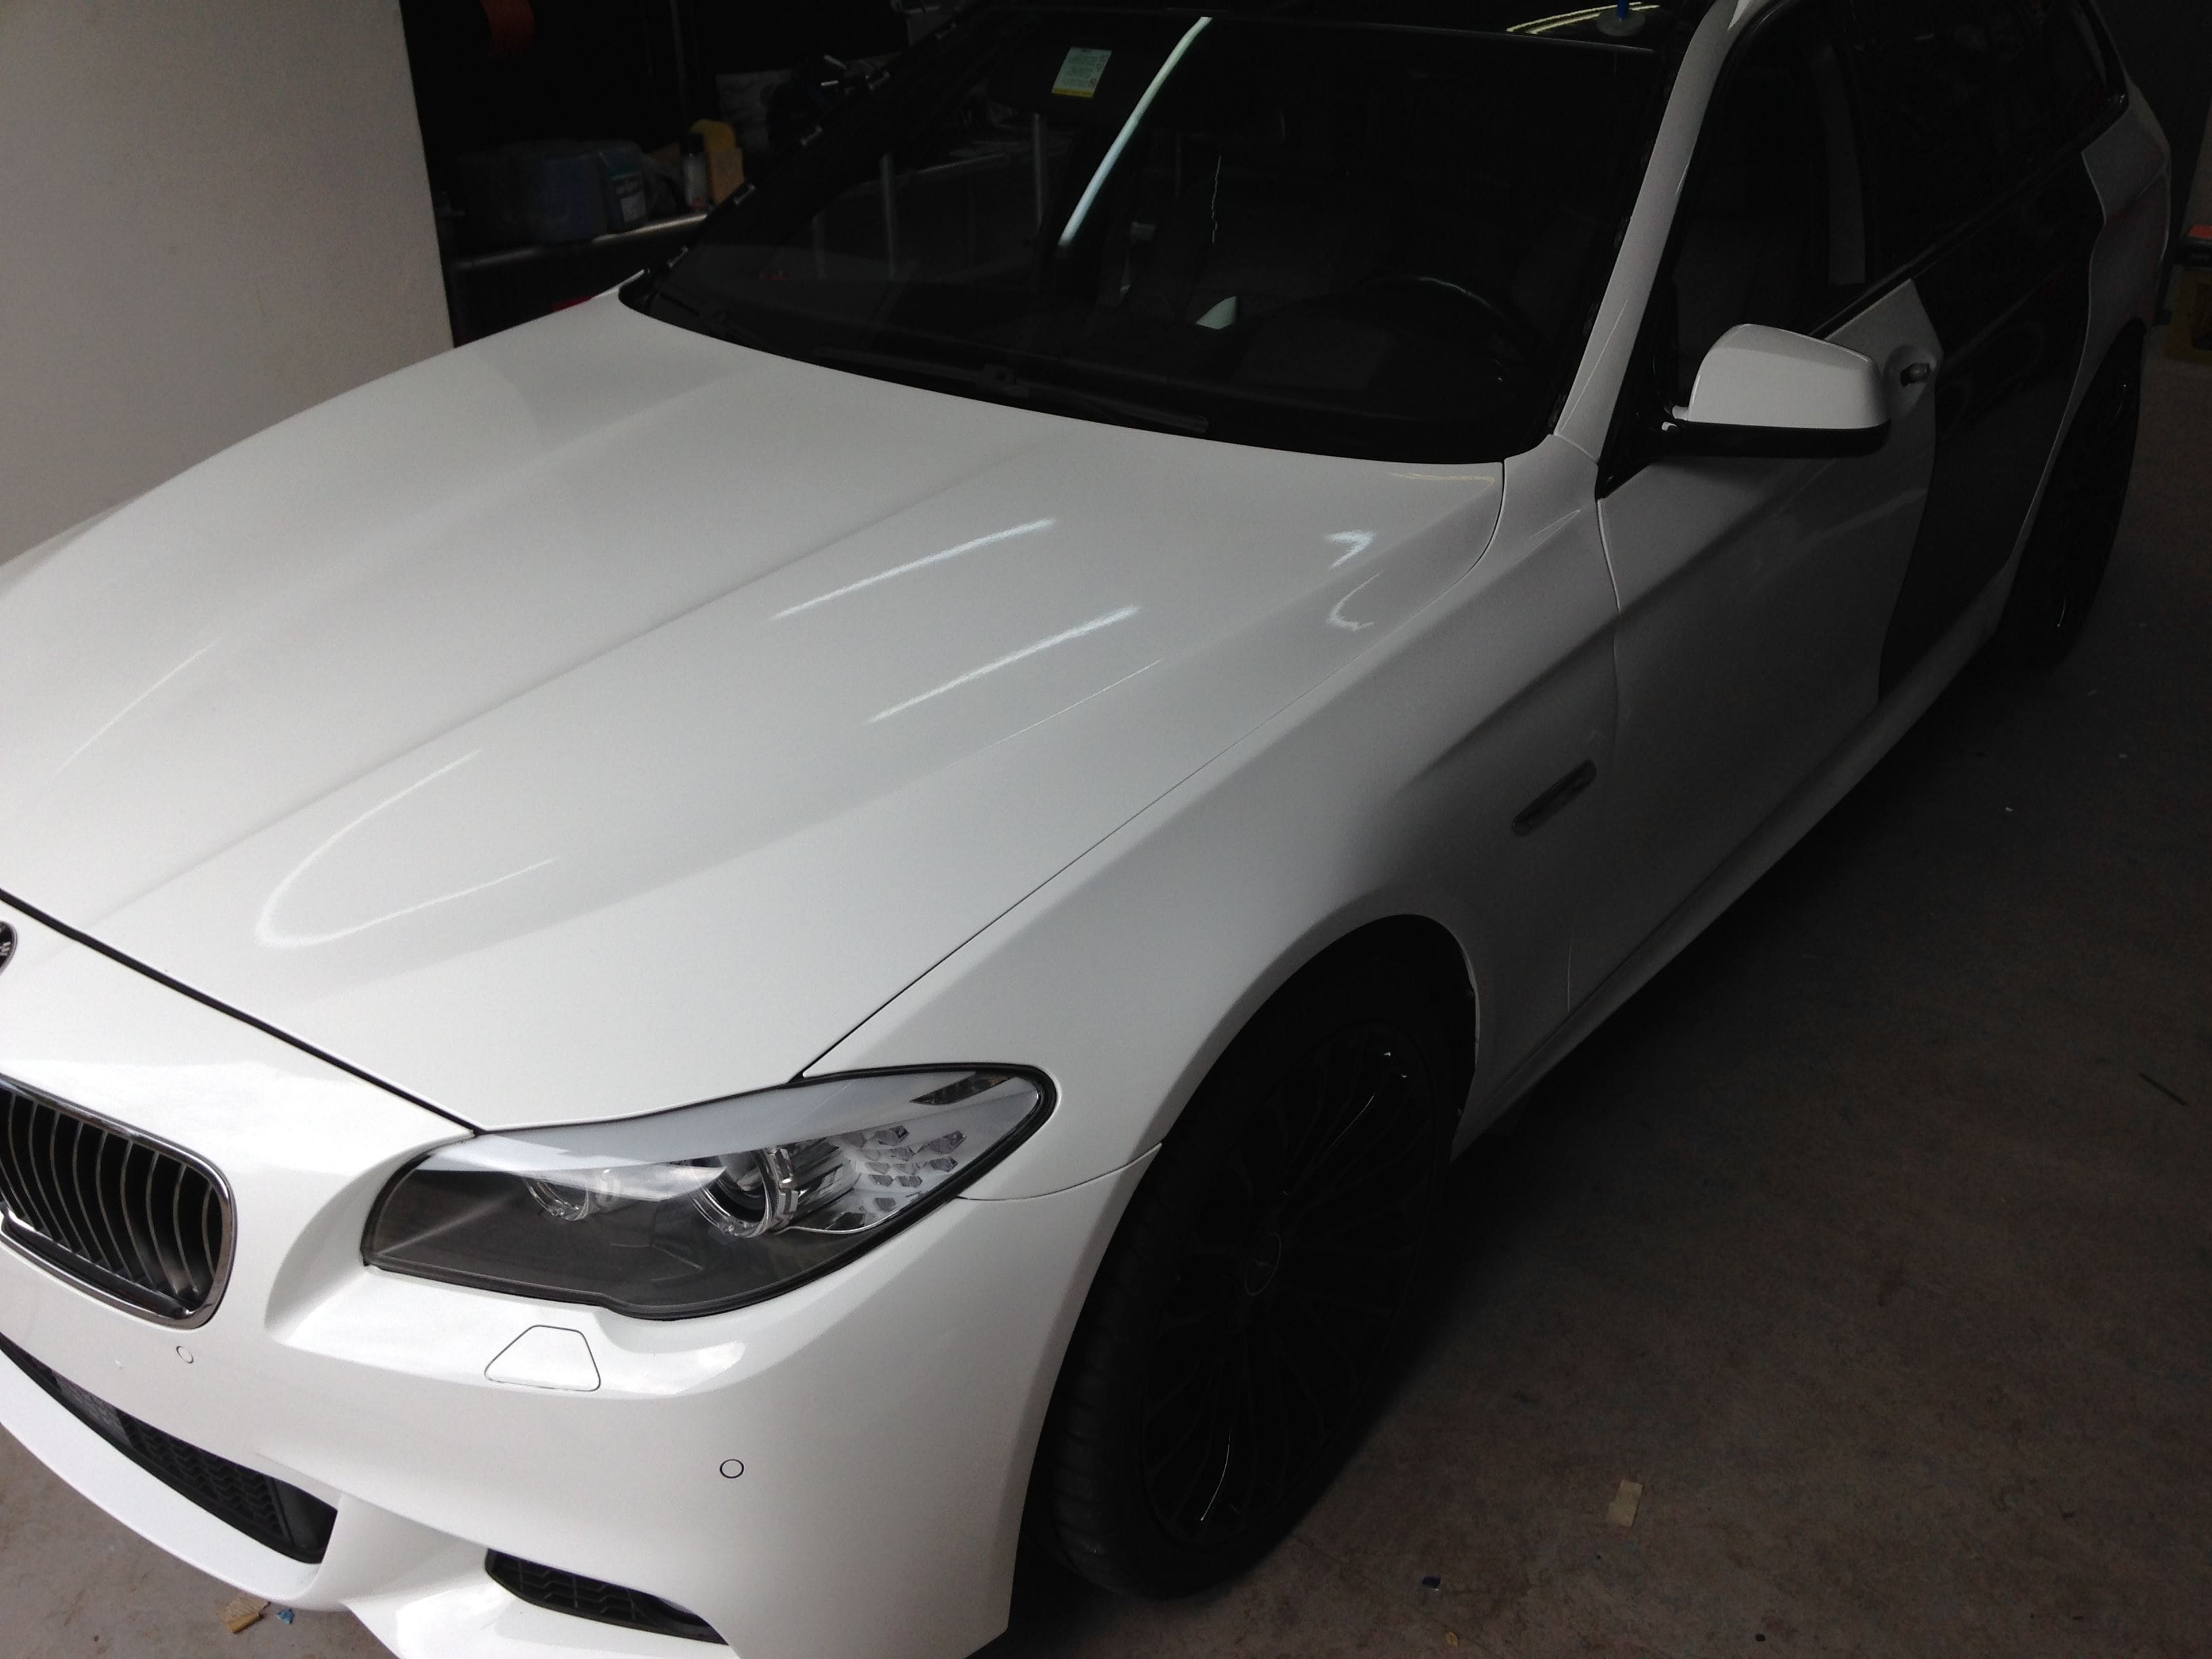 BMW 5 serie in een Full Glossy White Wrap, Carwrapping door Wrapmyride.nu Foto-nr:5248, ©2021